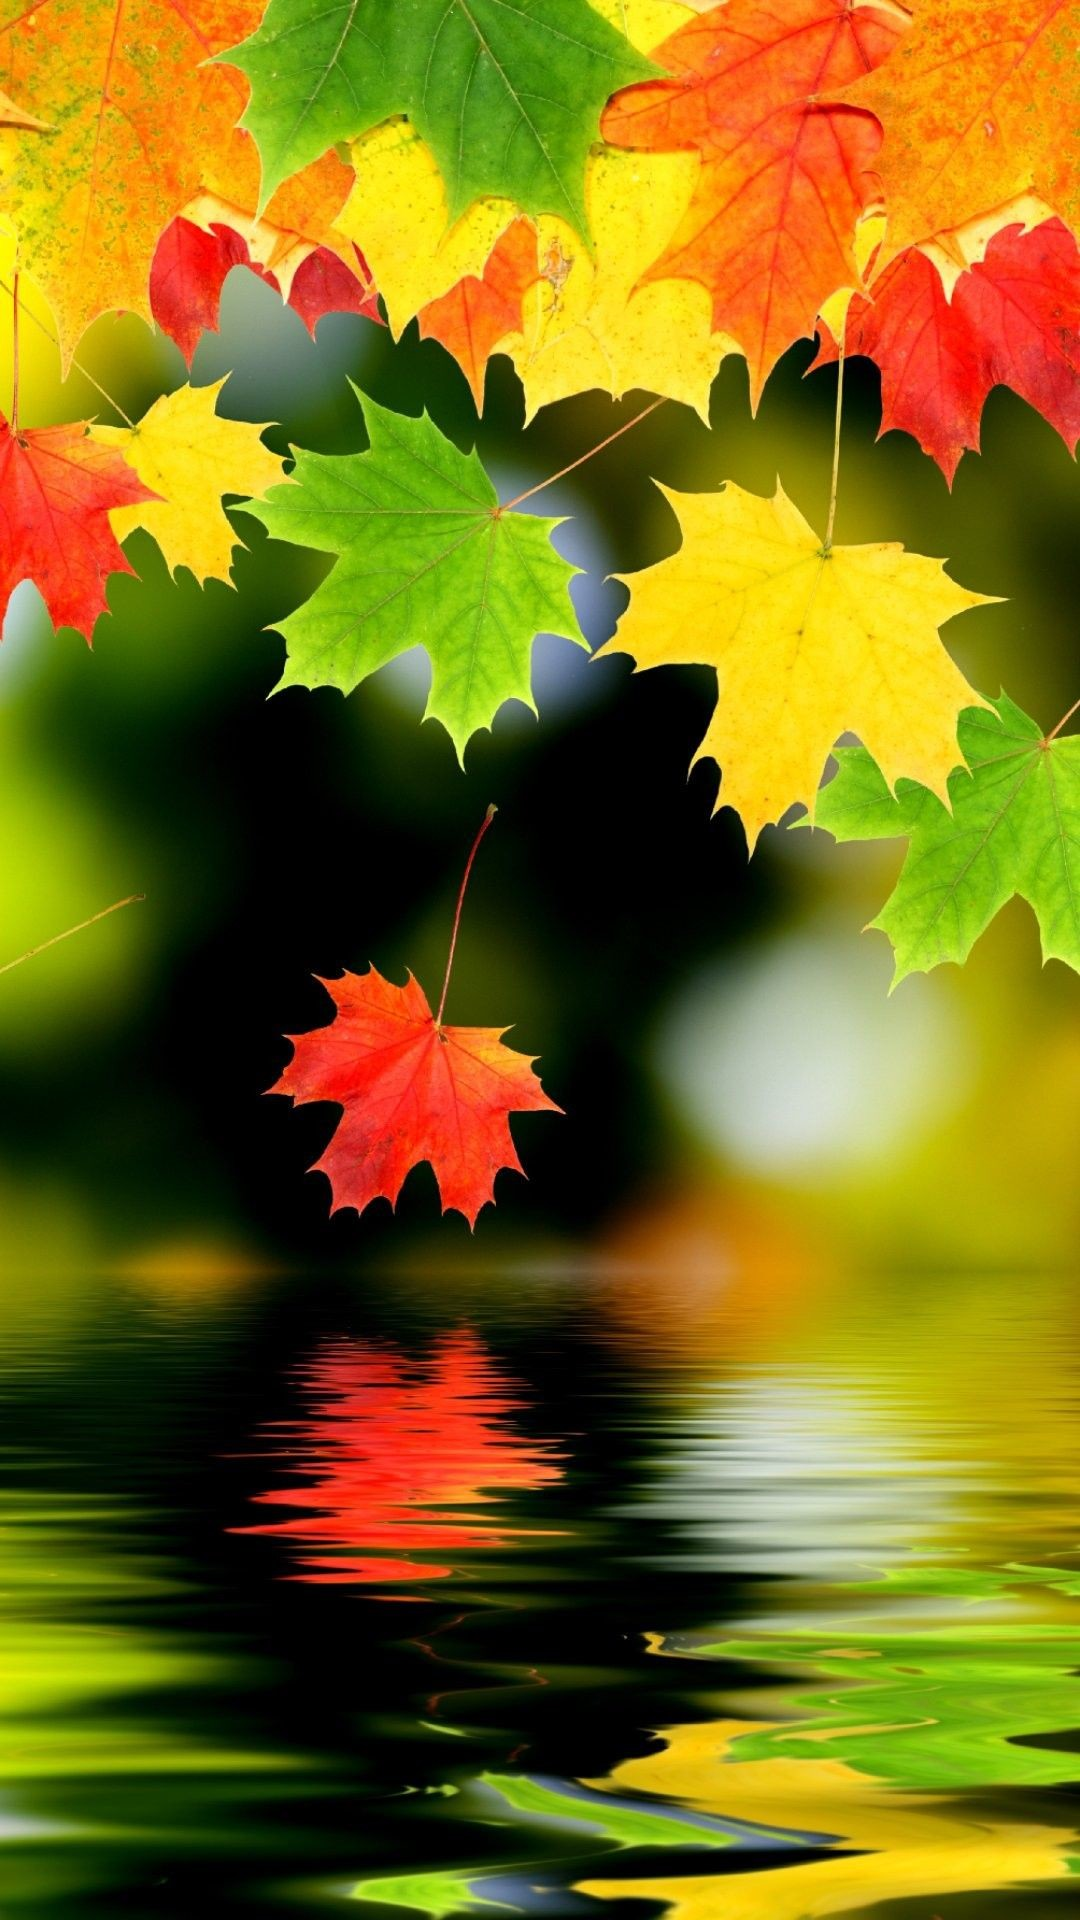 Res: 1080x1920, Autumn iPhone 6 Plus Wallpaper 13840 - Nature iPhone 6 Plus Wallpapers